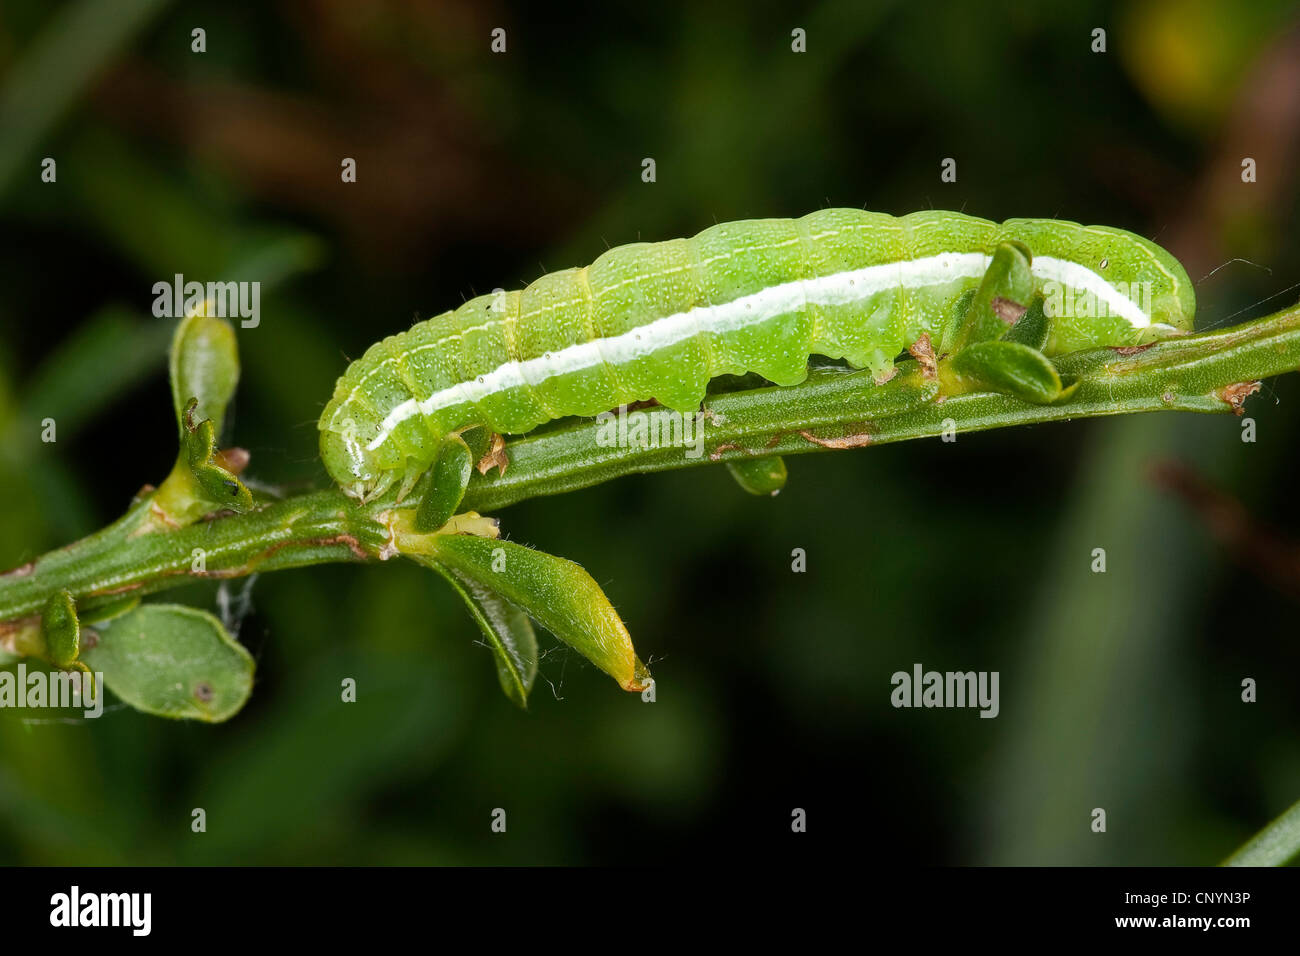 Hebrew character (Orthosia gothica), caterpillar, Germany - Stock Image